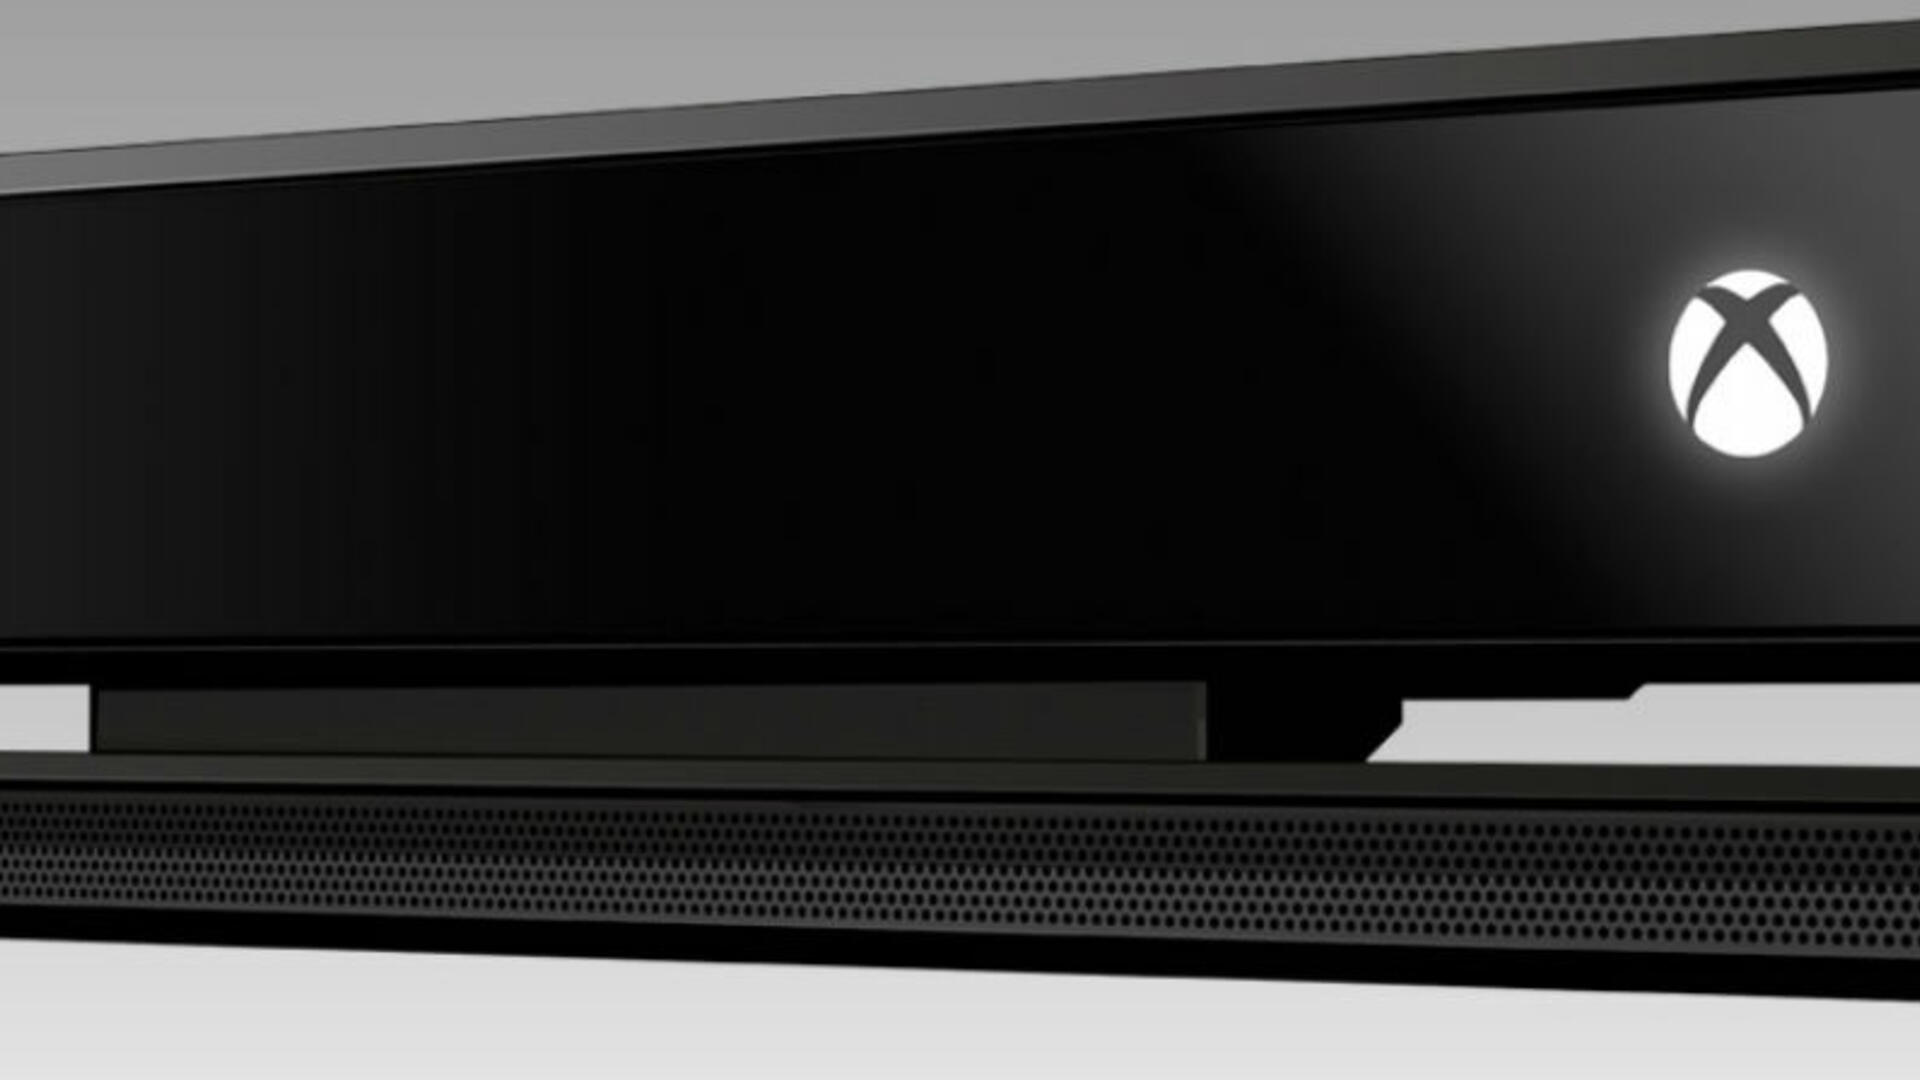 Xbox One Hardware Review: A Very Big Box of Tricks